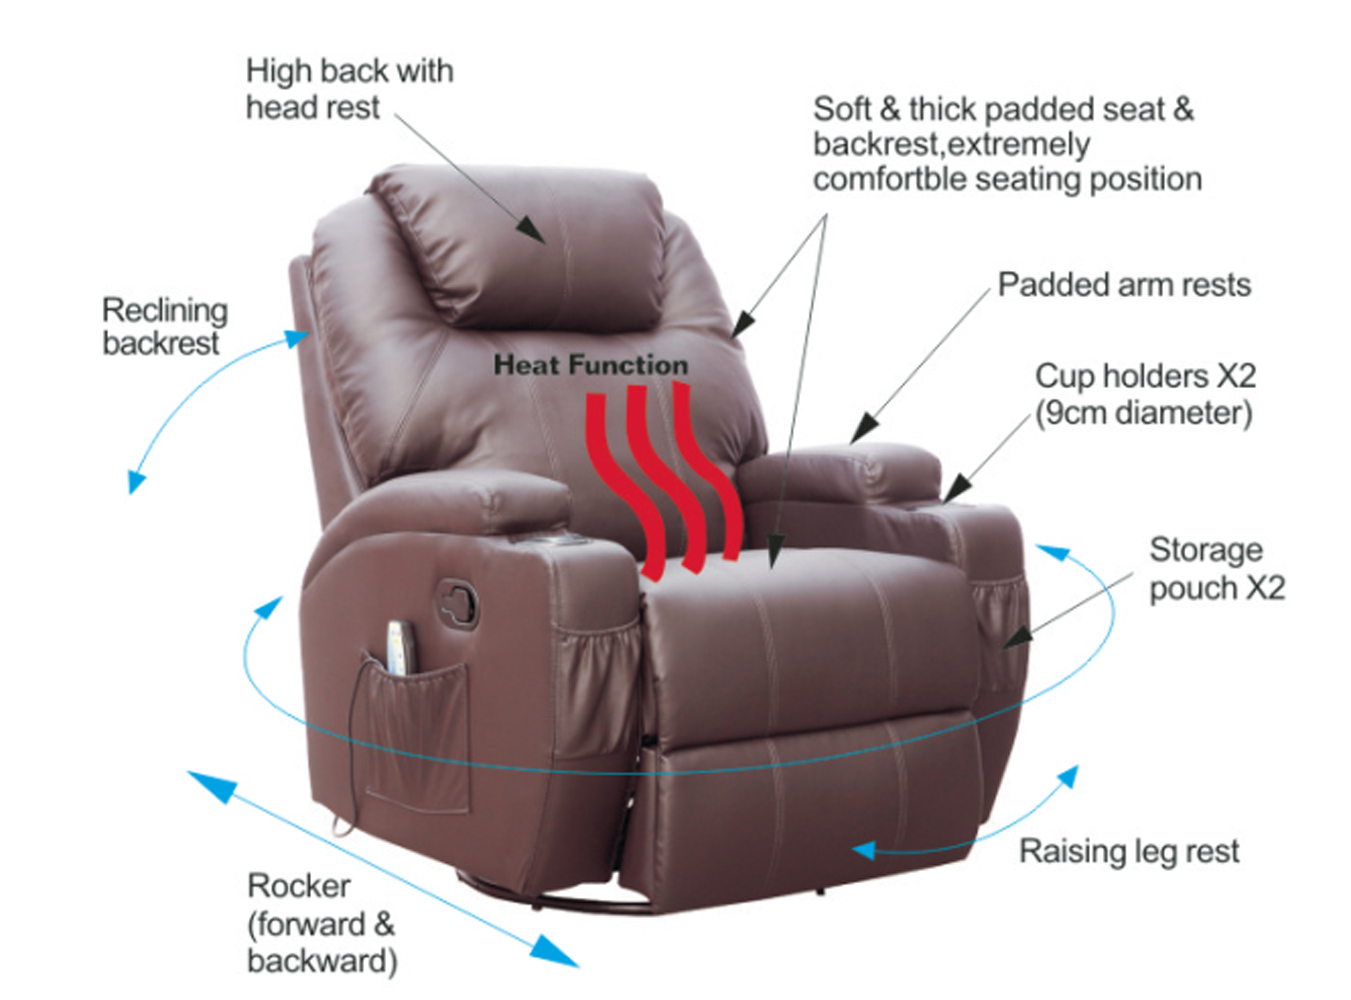 FoxHunter-Bonded-Leather-Sofa-Massage-Recliner-Chair-Swivel-  sc 1 st  eBay & FoxHunter Bonded Leather Sofa Massage Recliner Chair Swivel ... islam-shia.org